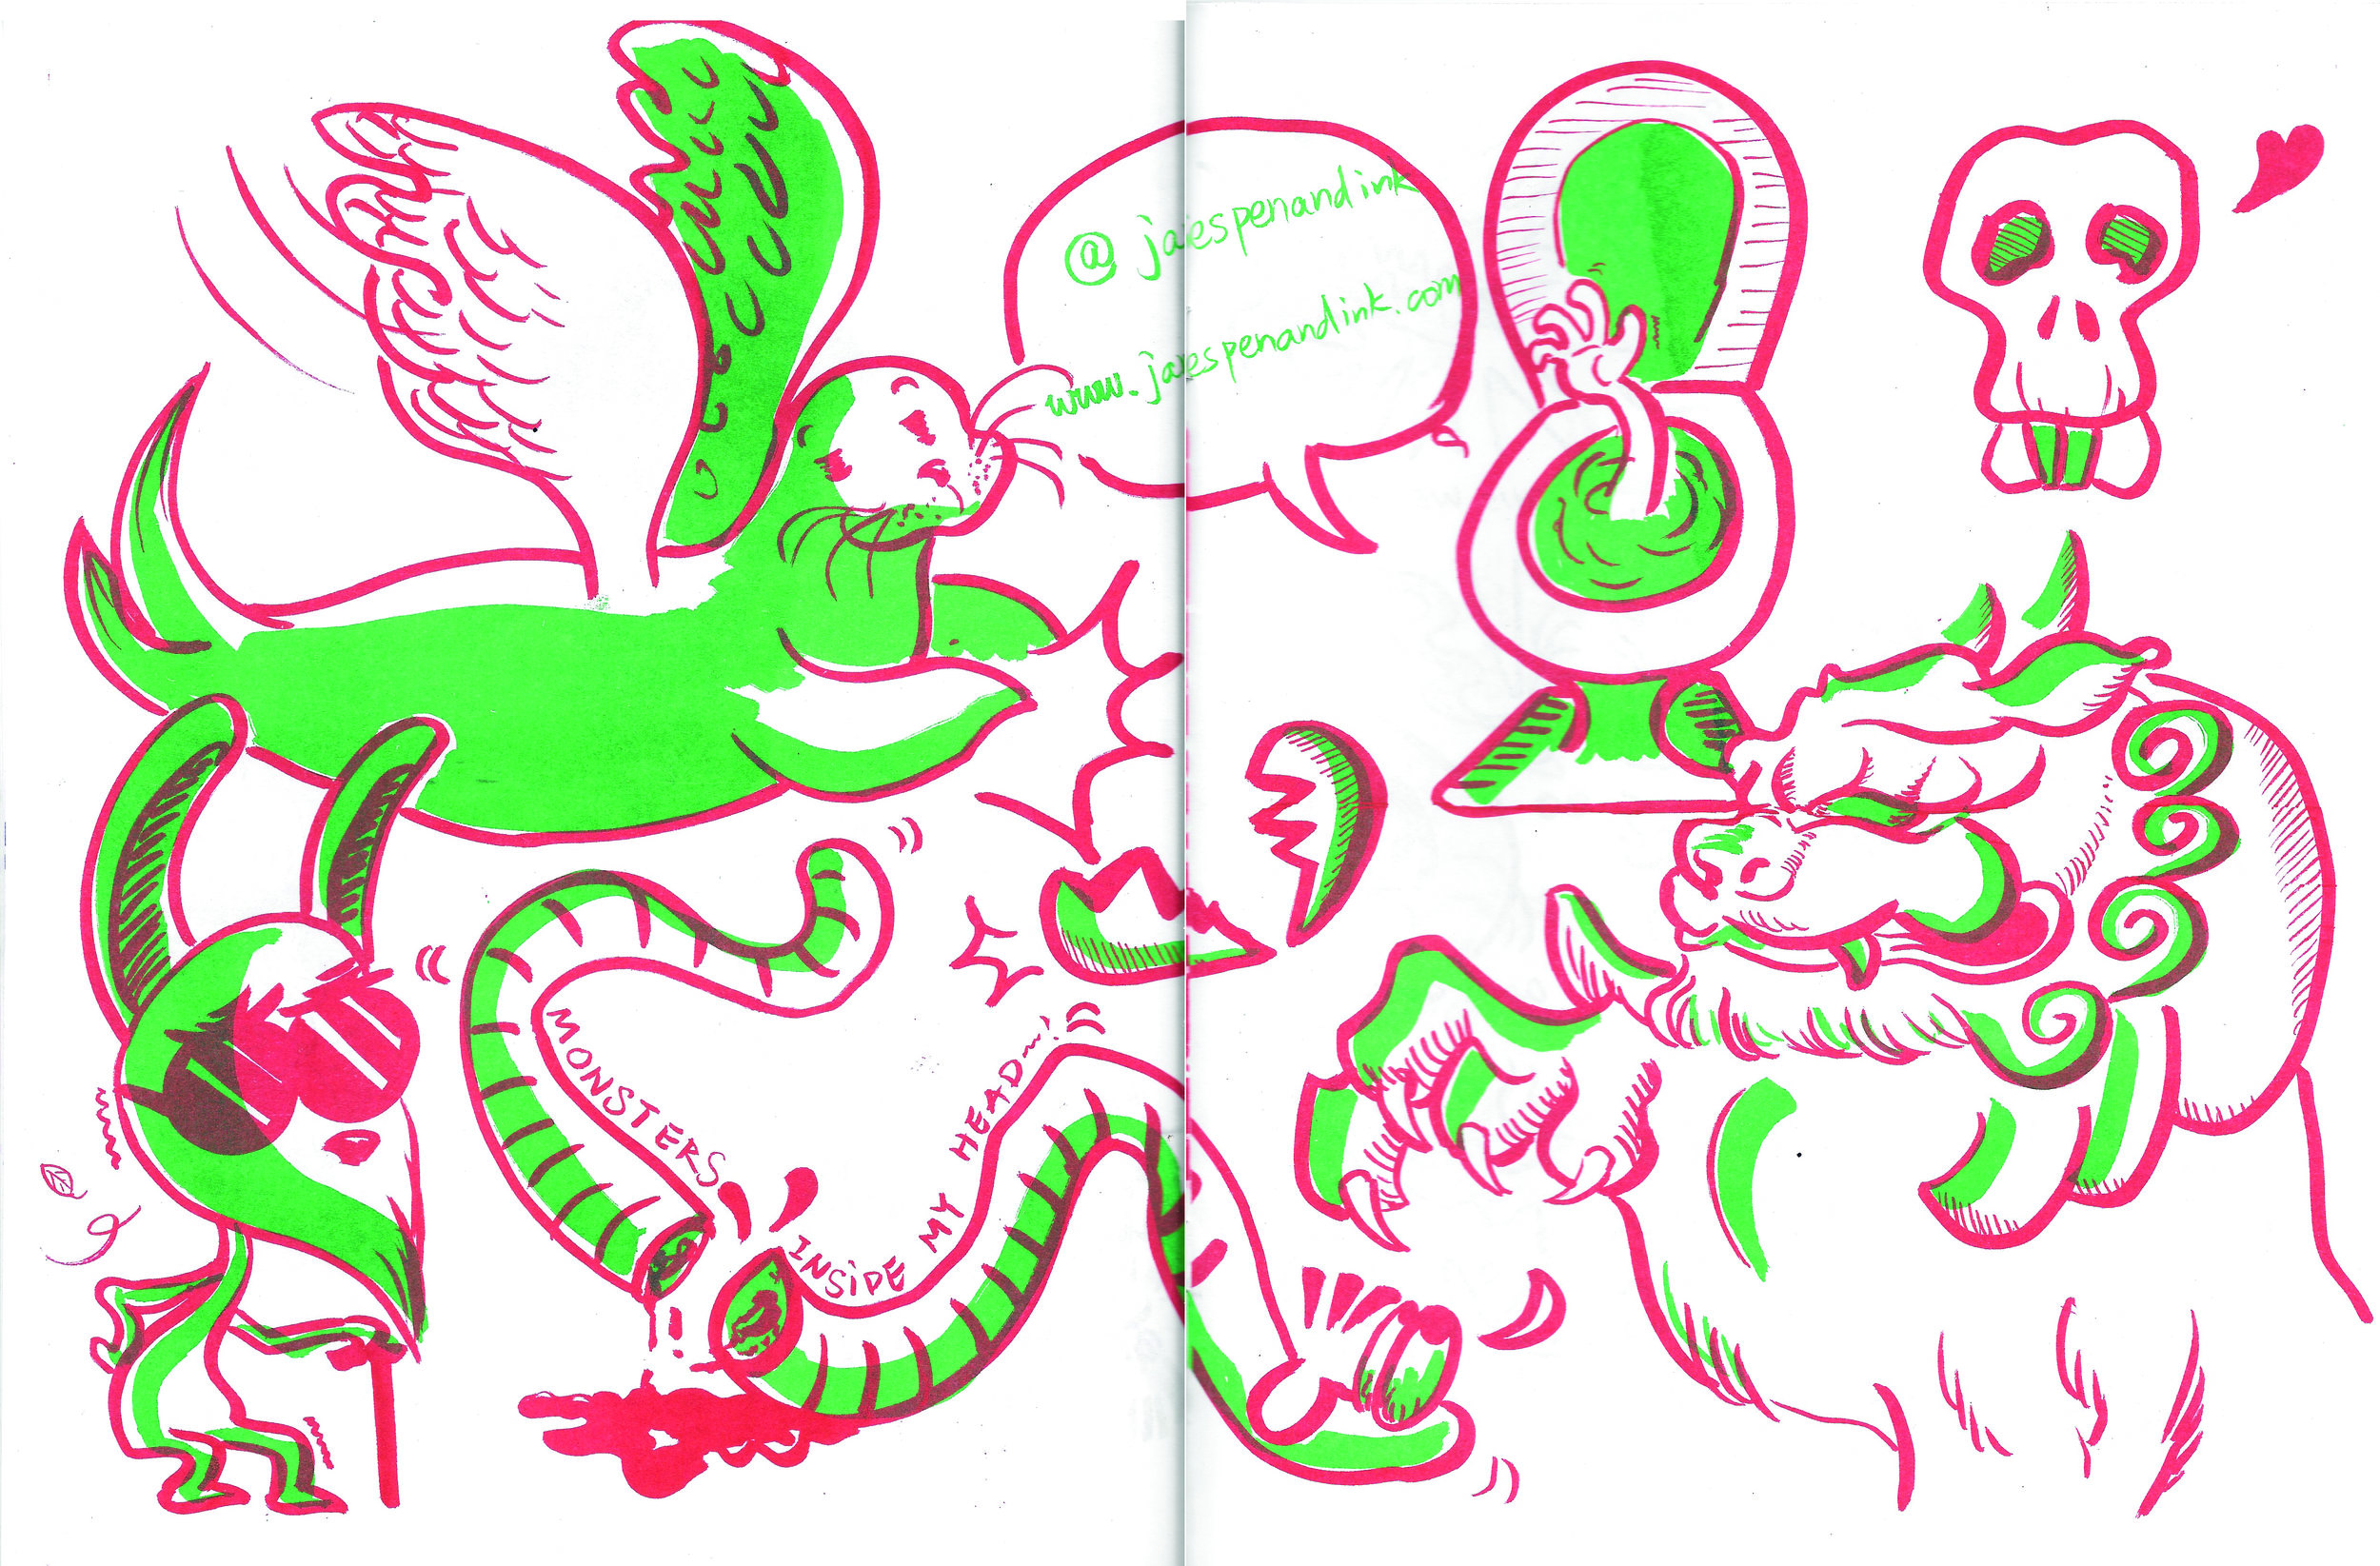 My page in the zine, drawn by hand then scanned.